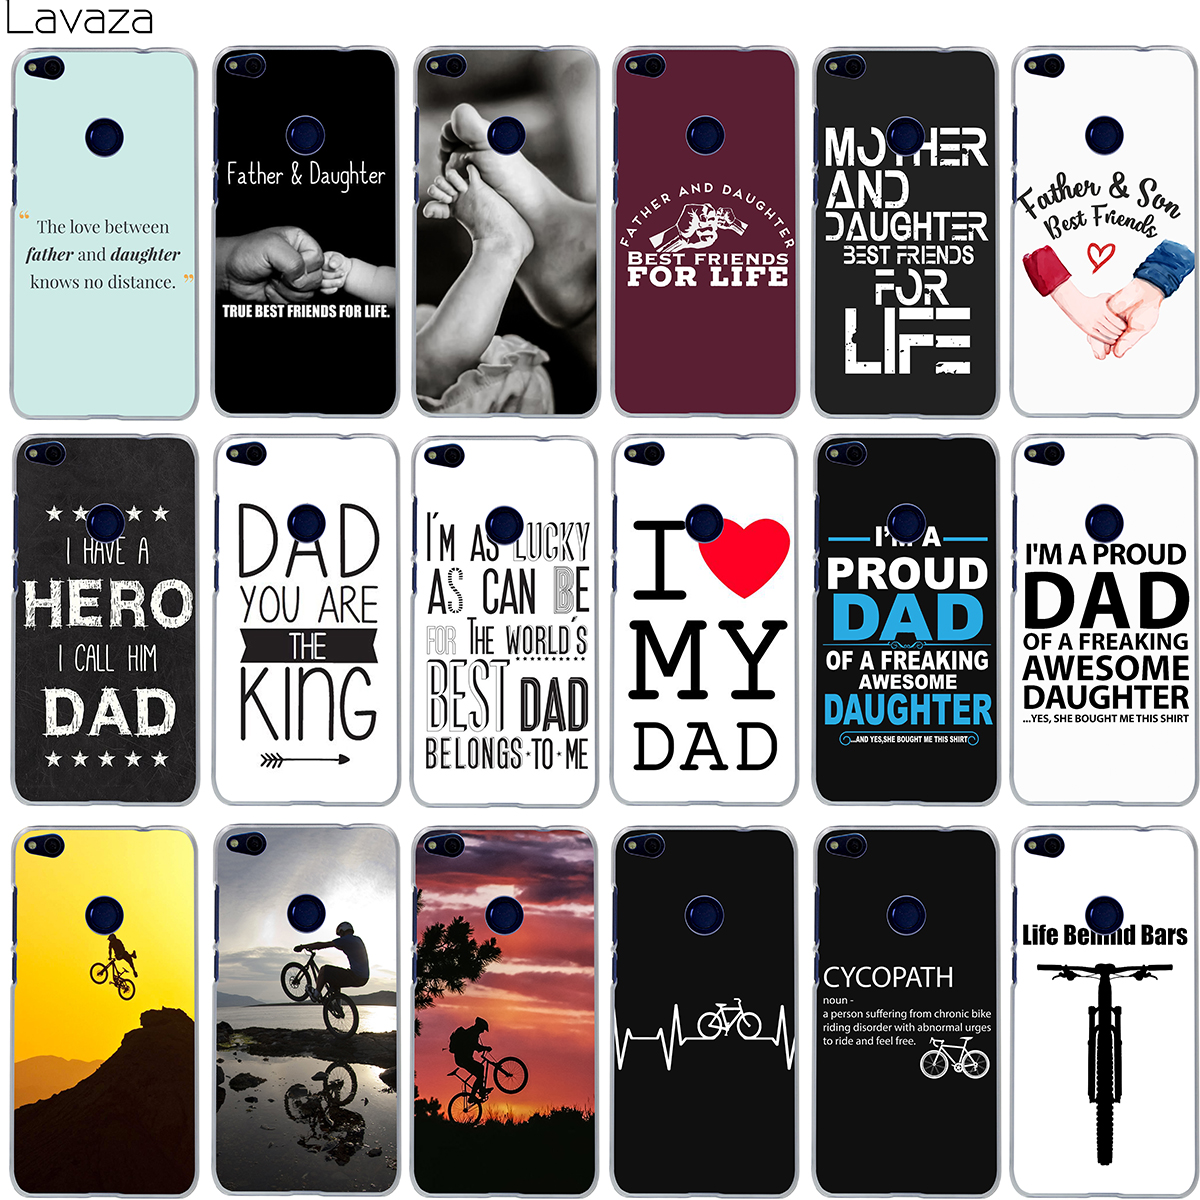 Lavaza Family Daddy And Daughter Son Im A Proud Dad Case for Huawei Honor Mate Nova 9 P20 2i 2 2s P Smart Lite Pro Plus